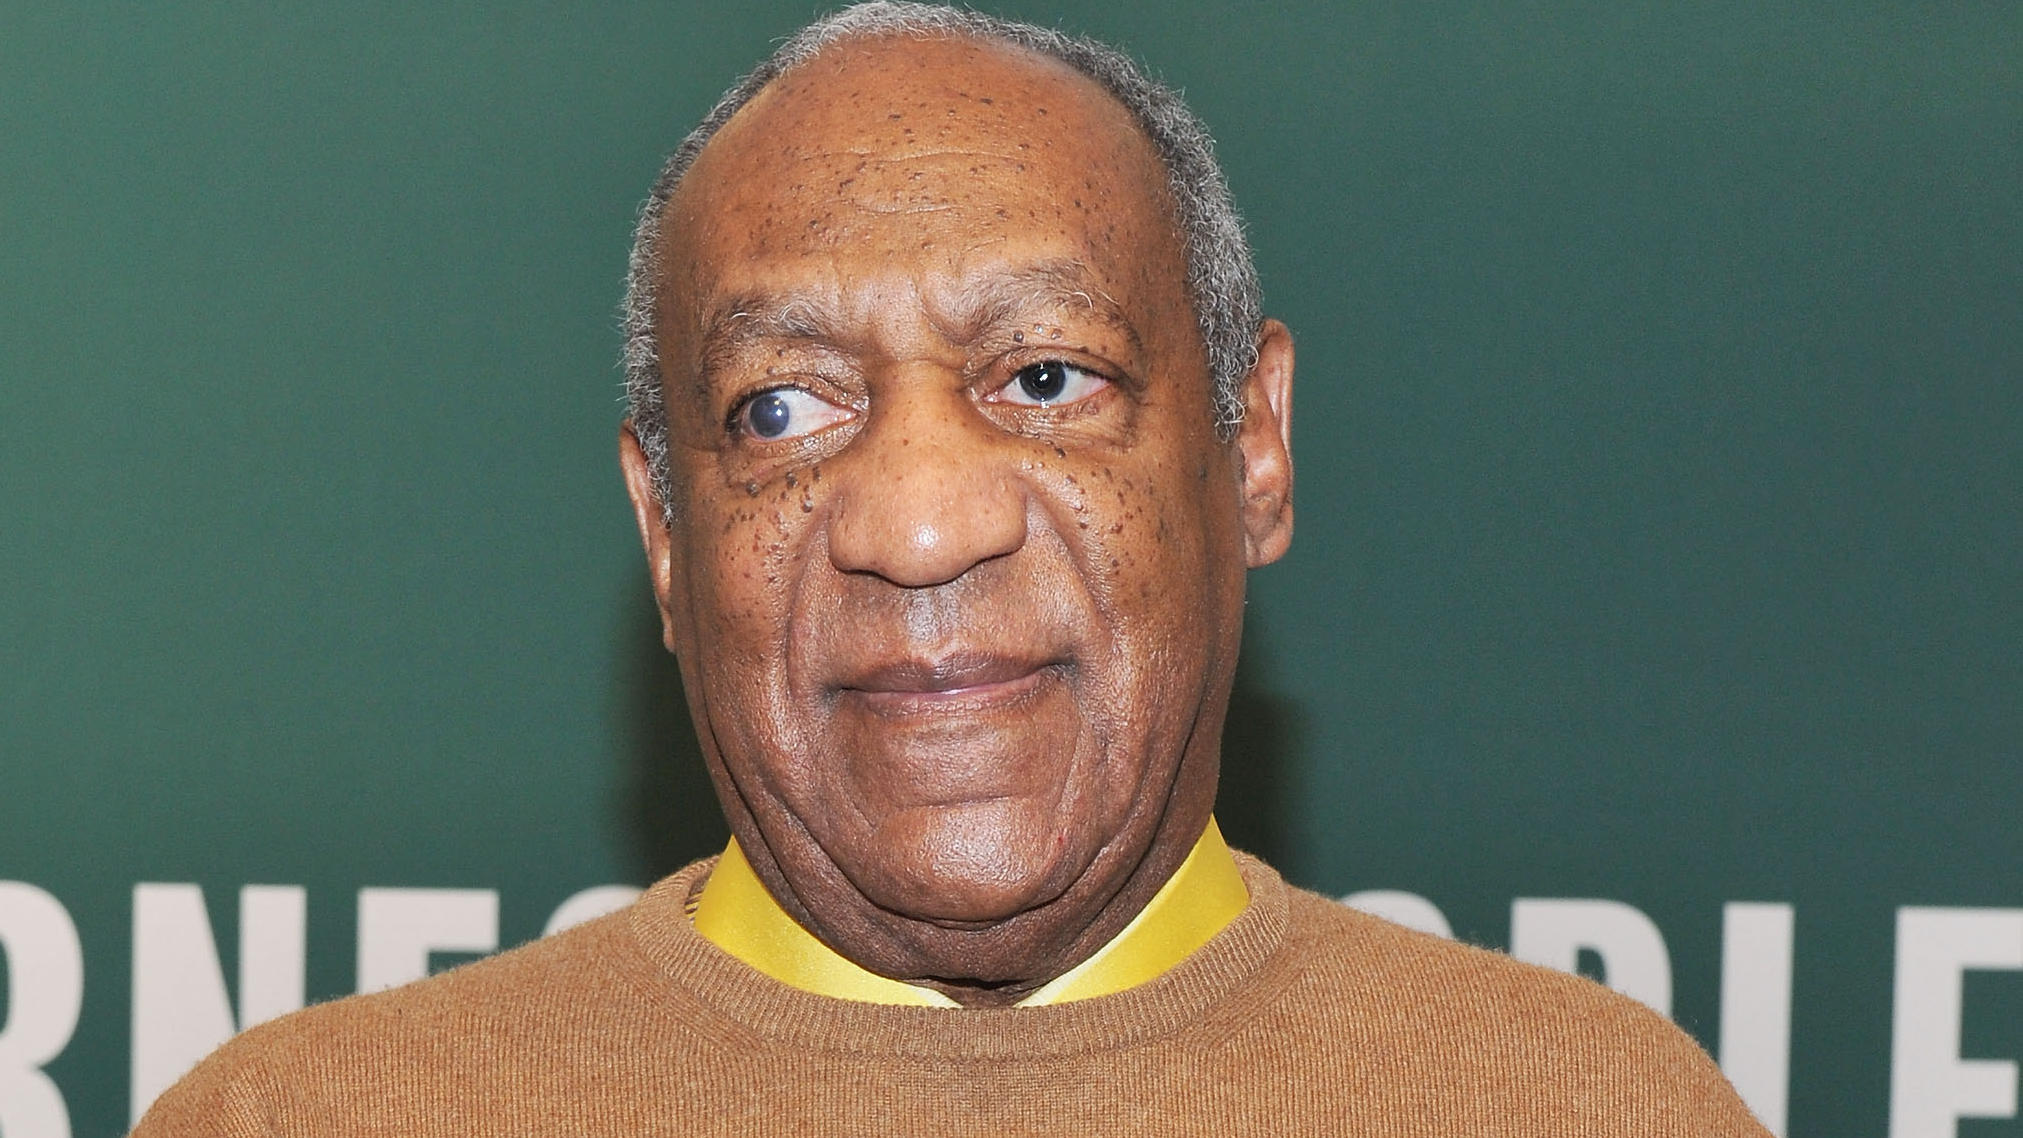 Bill Cosby  Celebrity Wallpaper HD Wallpaper